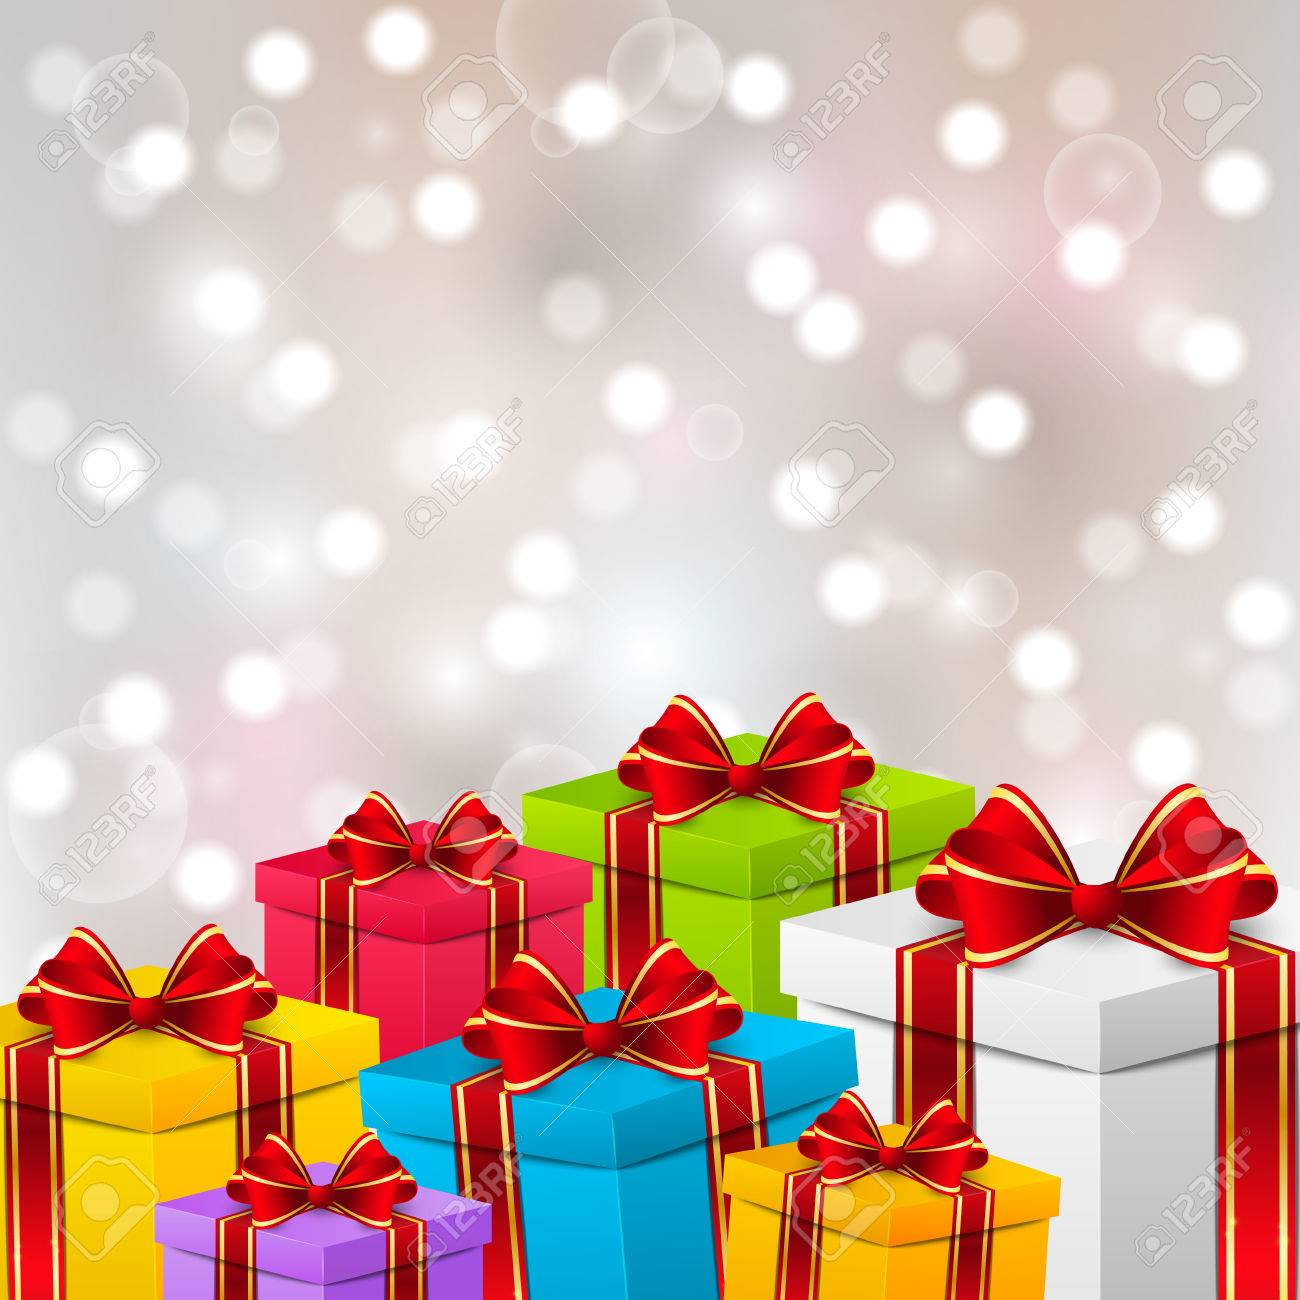 Birthday Gift Boxes On Shiny Background